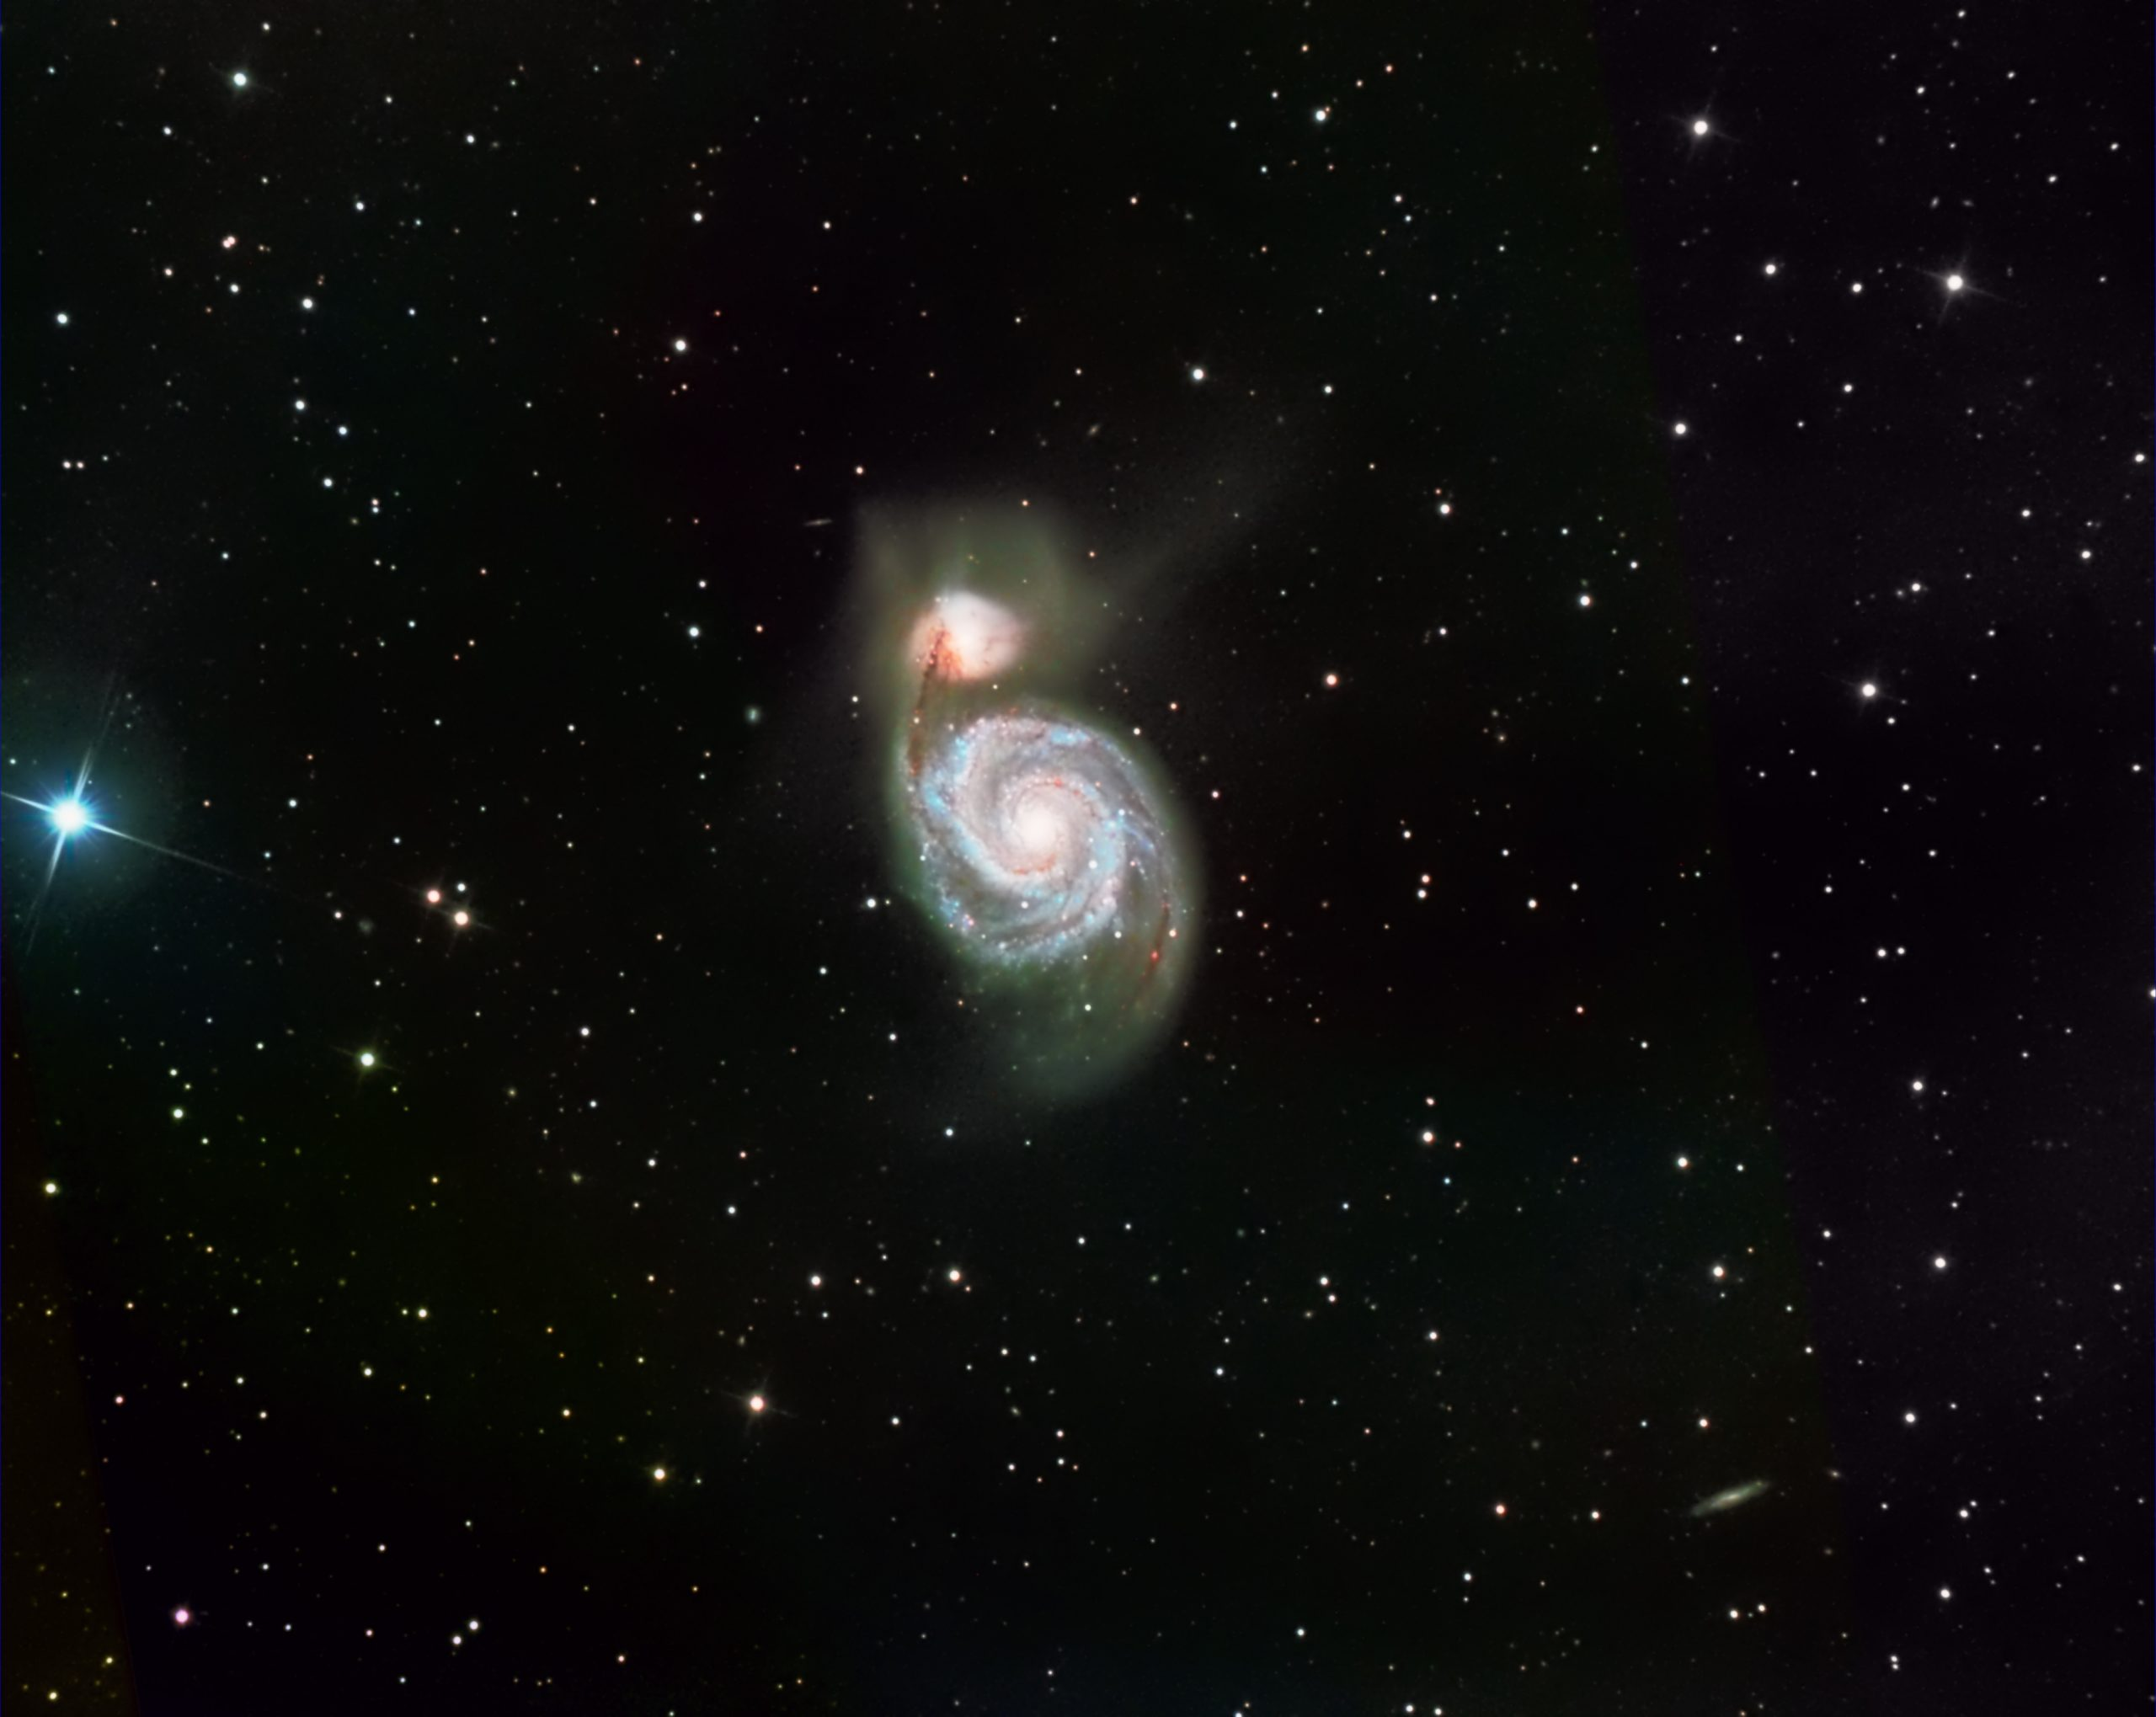 M51, the Whirlpool Galaxy. Imaged from Kendal